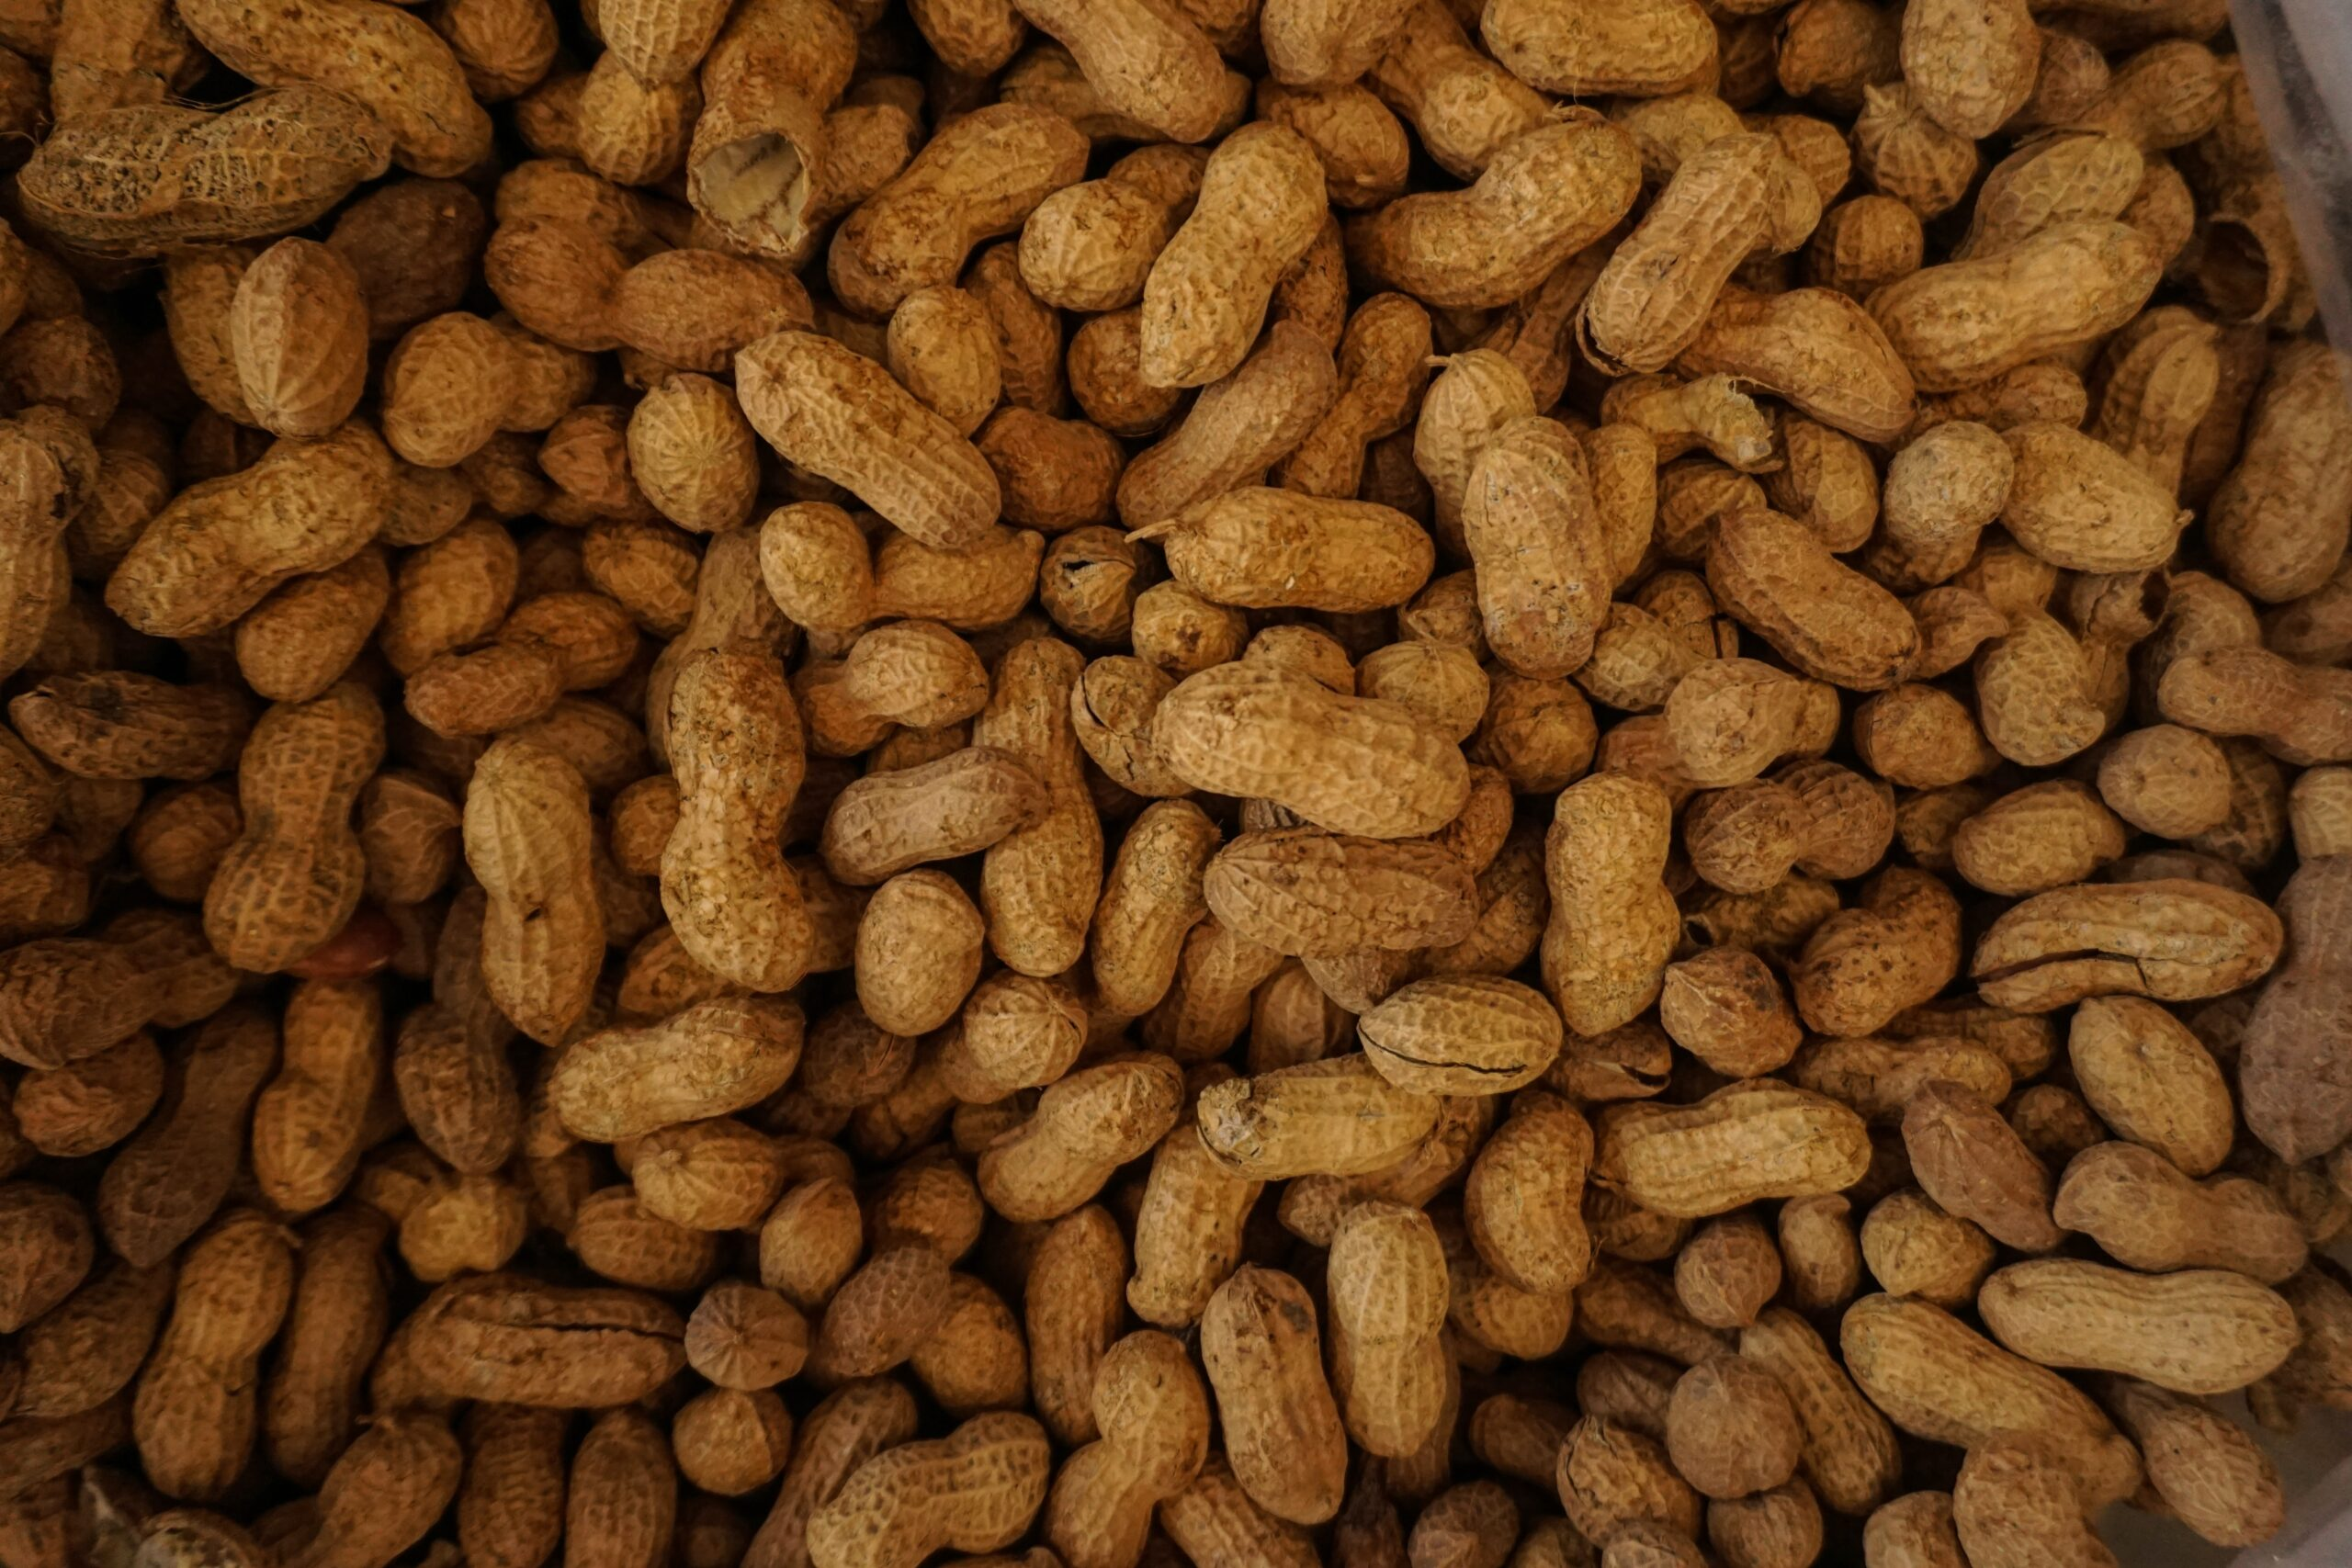 Pile Of Dried Peanuts